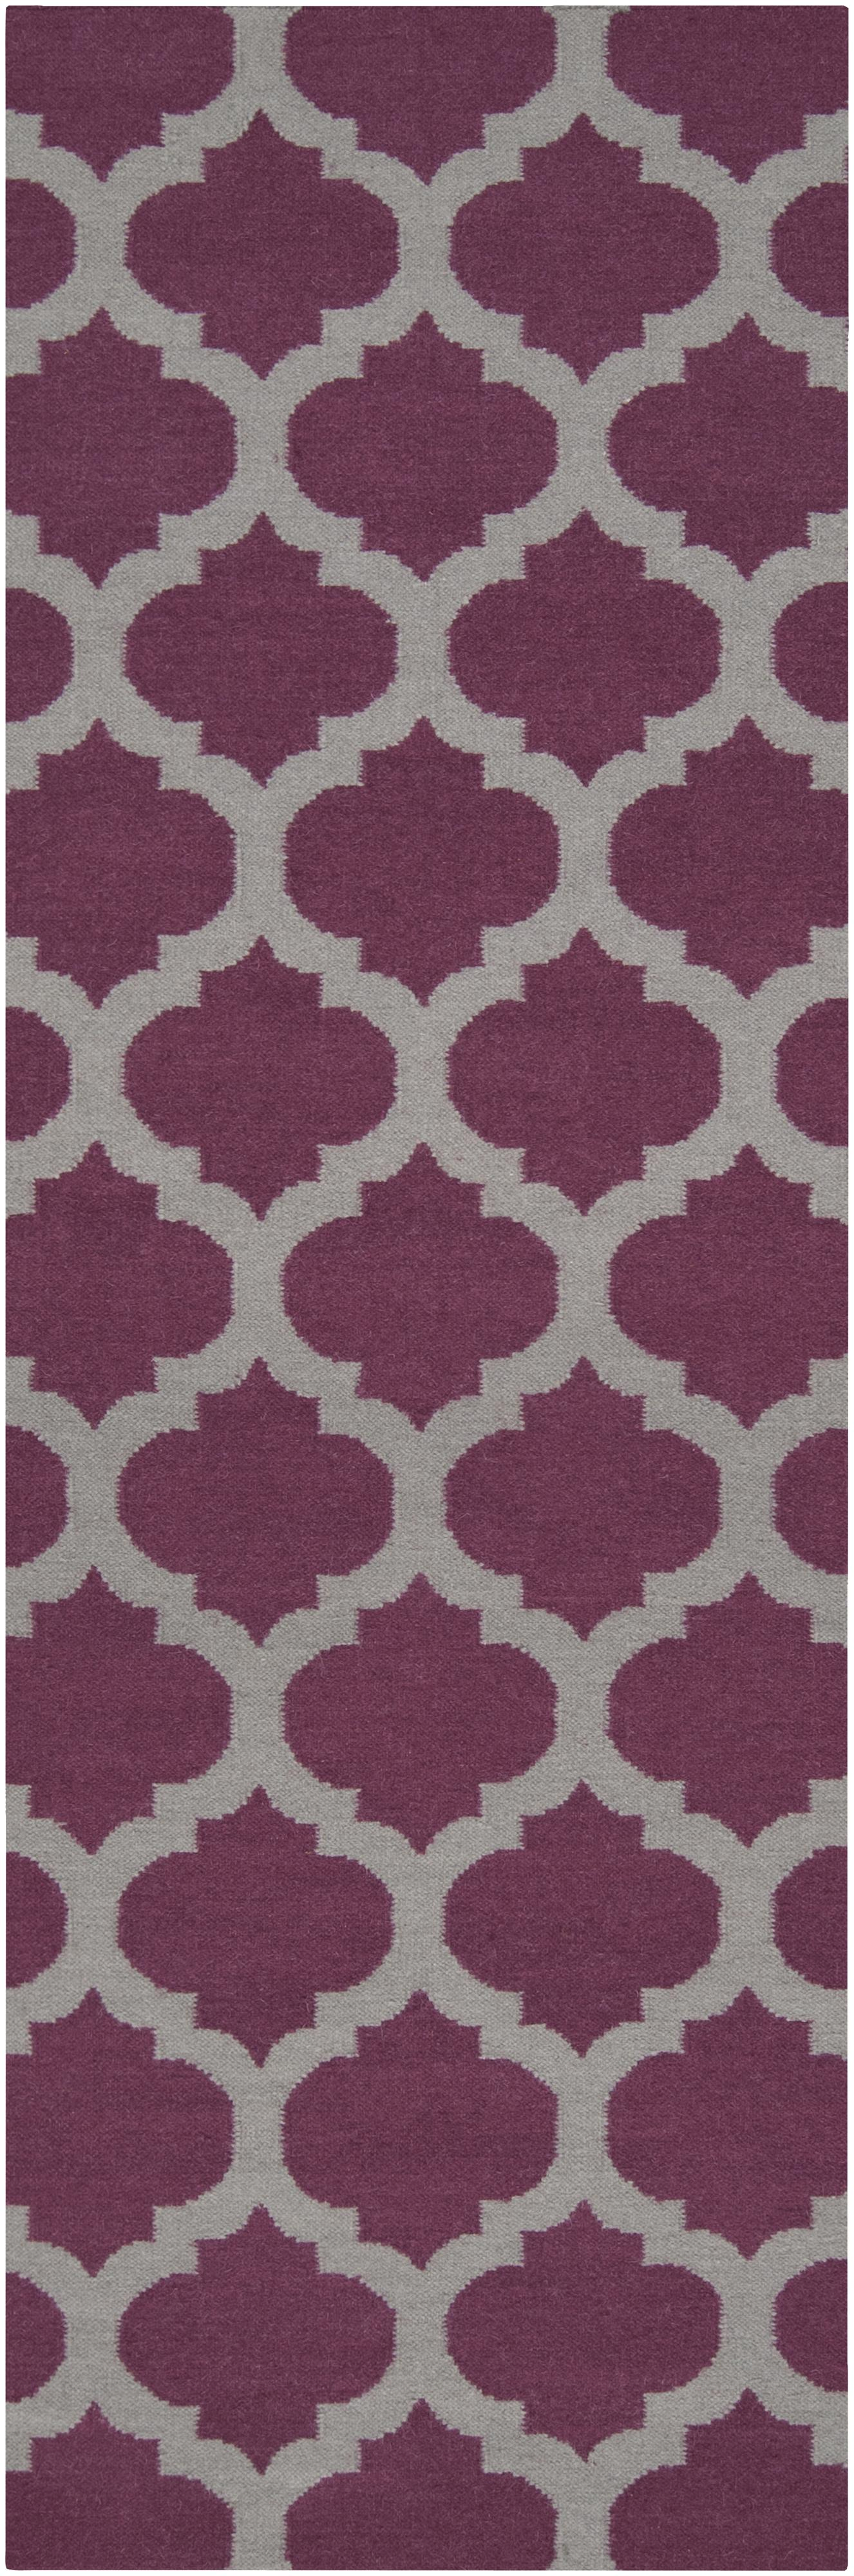 "Surya Rugs Frontier 2'6"" x 8' - Item Number: FT115-268"